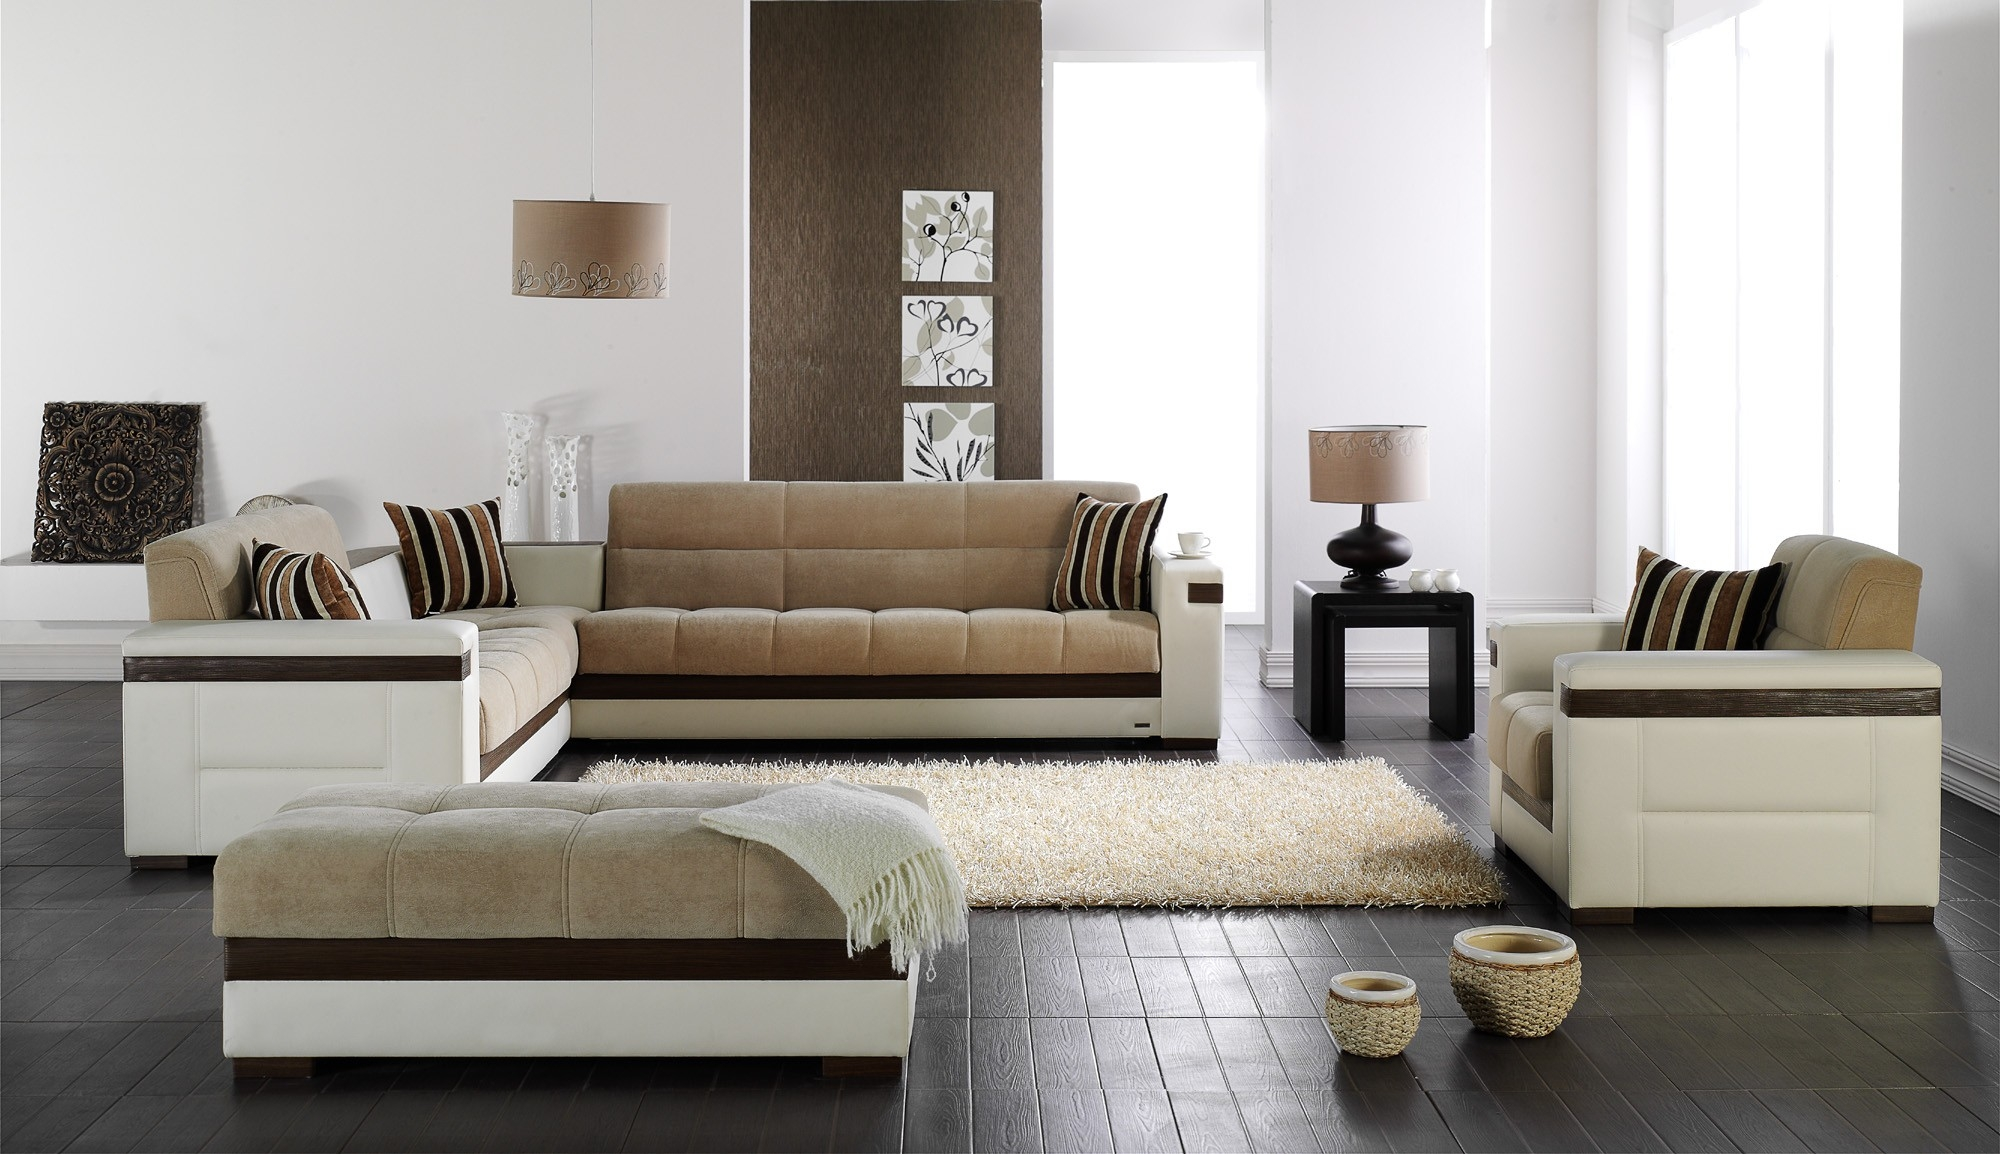 Moon Sectional Sofa Sleeper Intended For European Sectional Sofas (View 3 of 15)